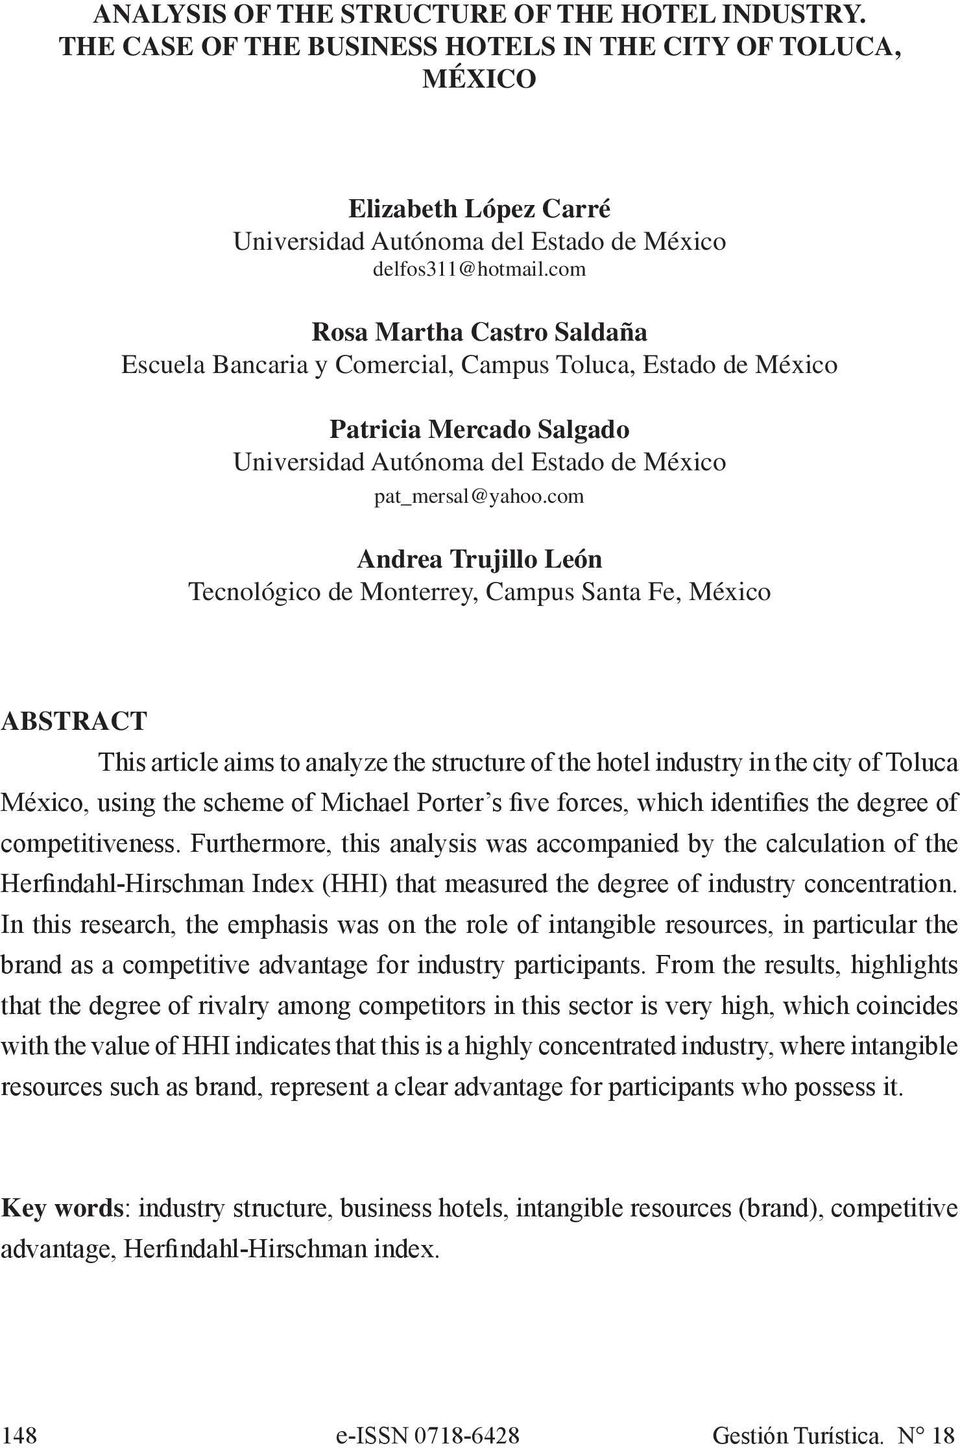 com Andrea Trujillo León Tecnológico de Monterrey, Campus Santa Fe, México ABSTRACT This article aims to analyze the structure of the hotel industry in the city of Toluca México, using the scheme of